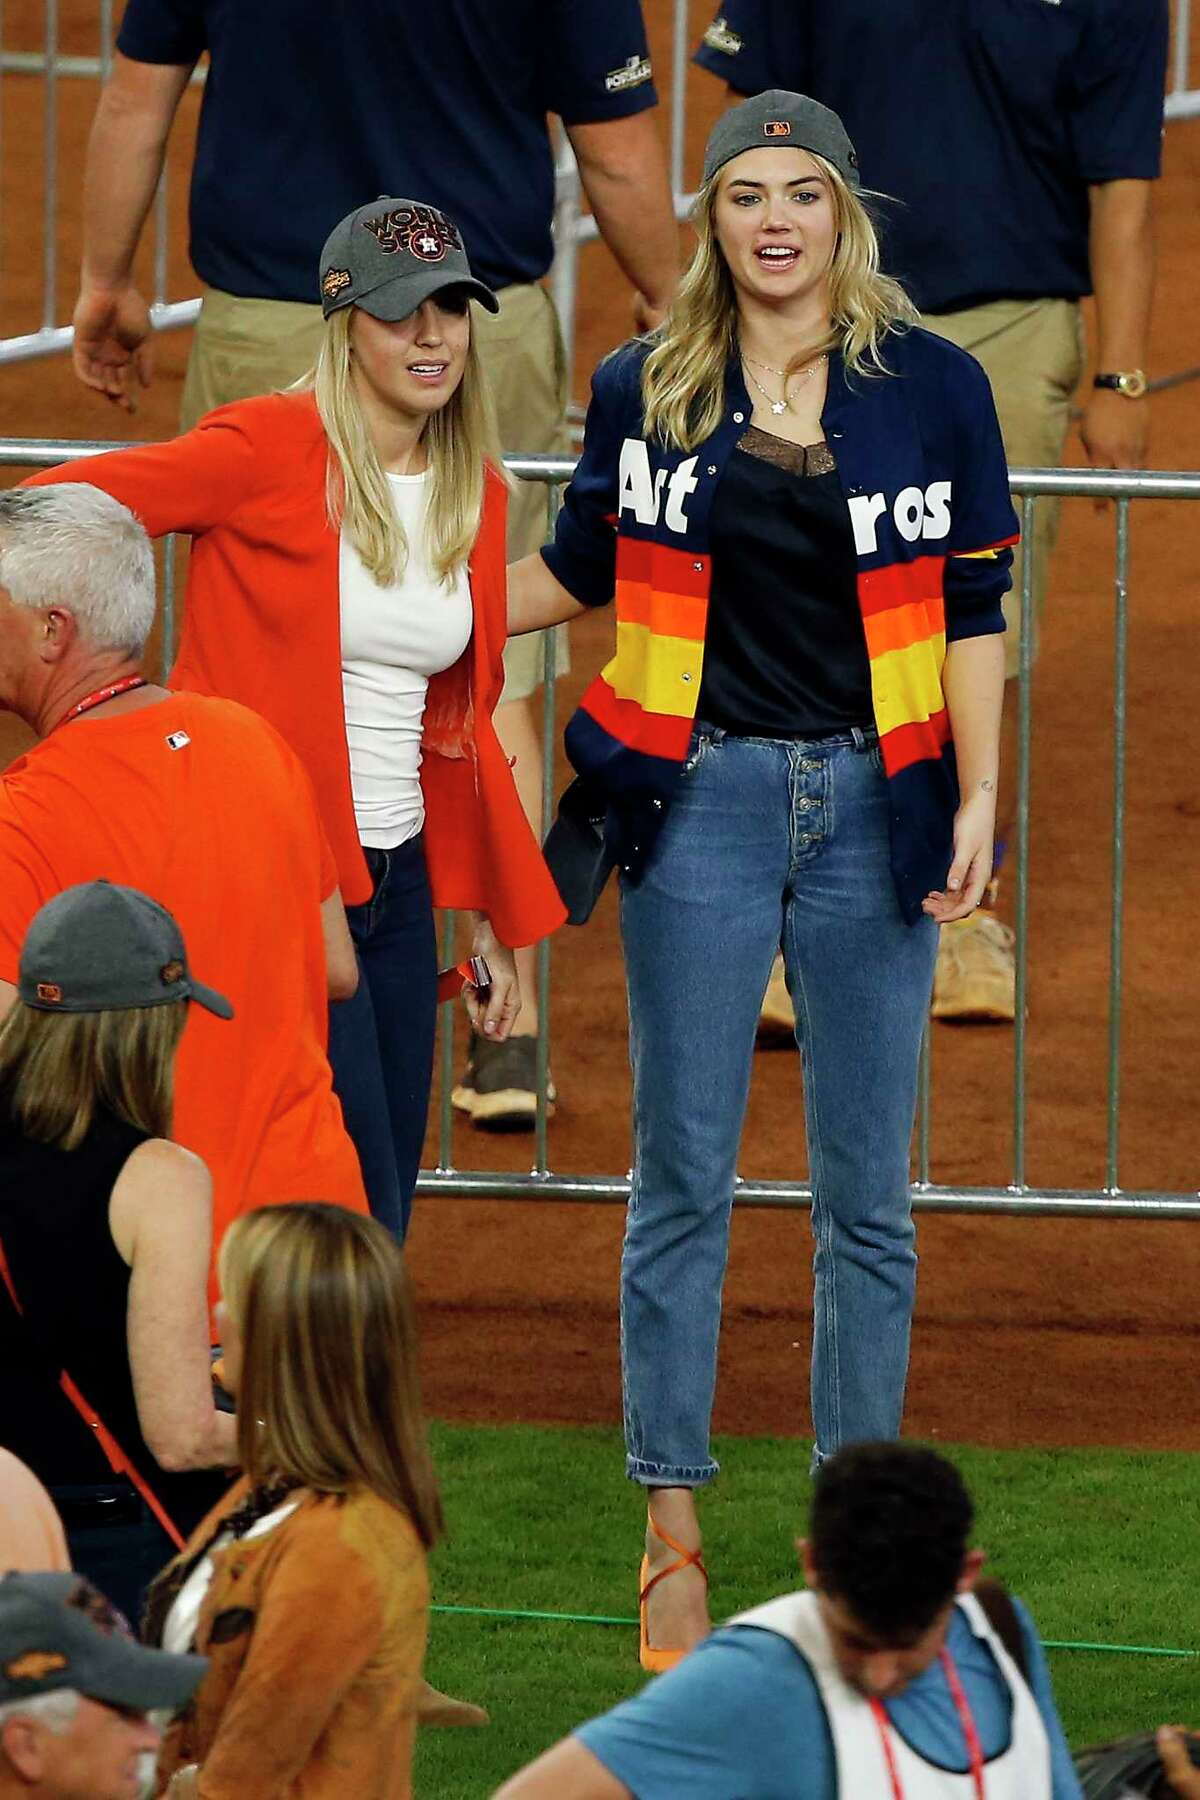 Kate Upton on the field after the Astros game 7 ALCS championship victory against the Yankees